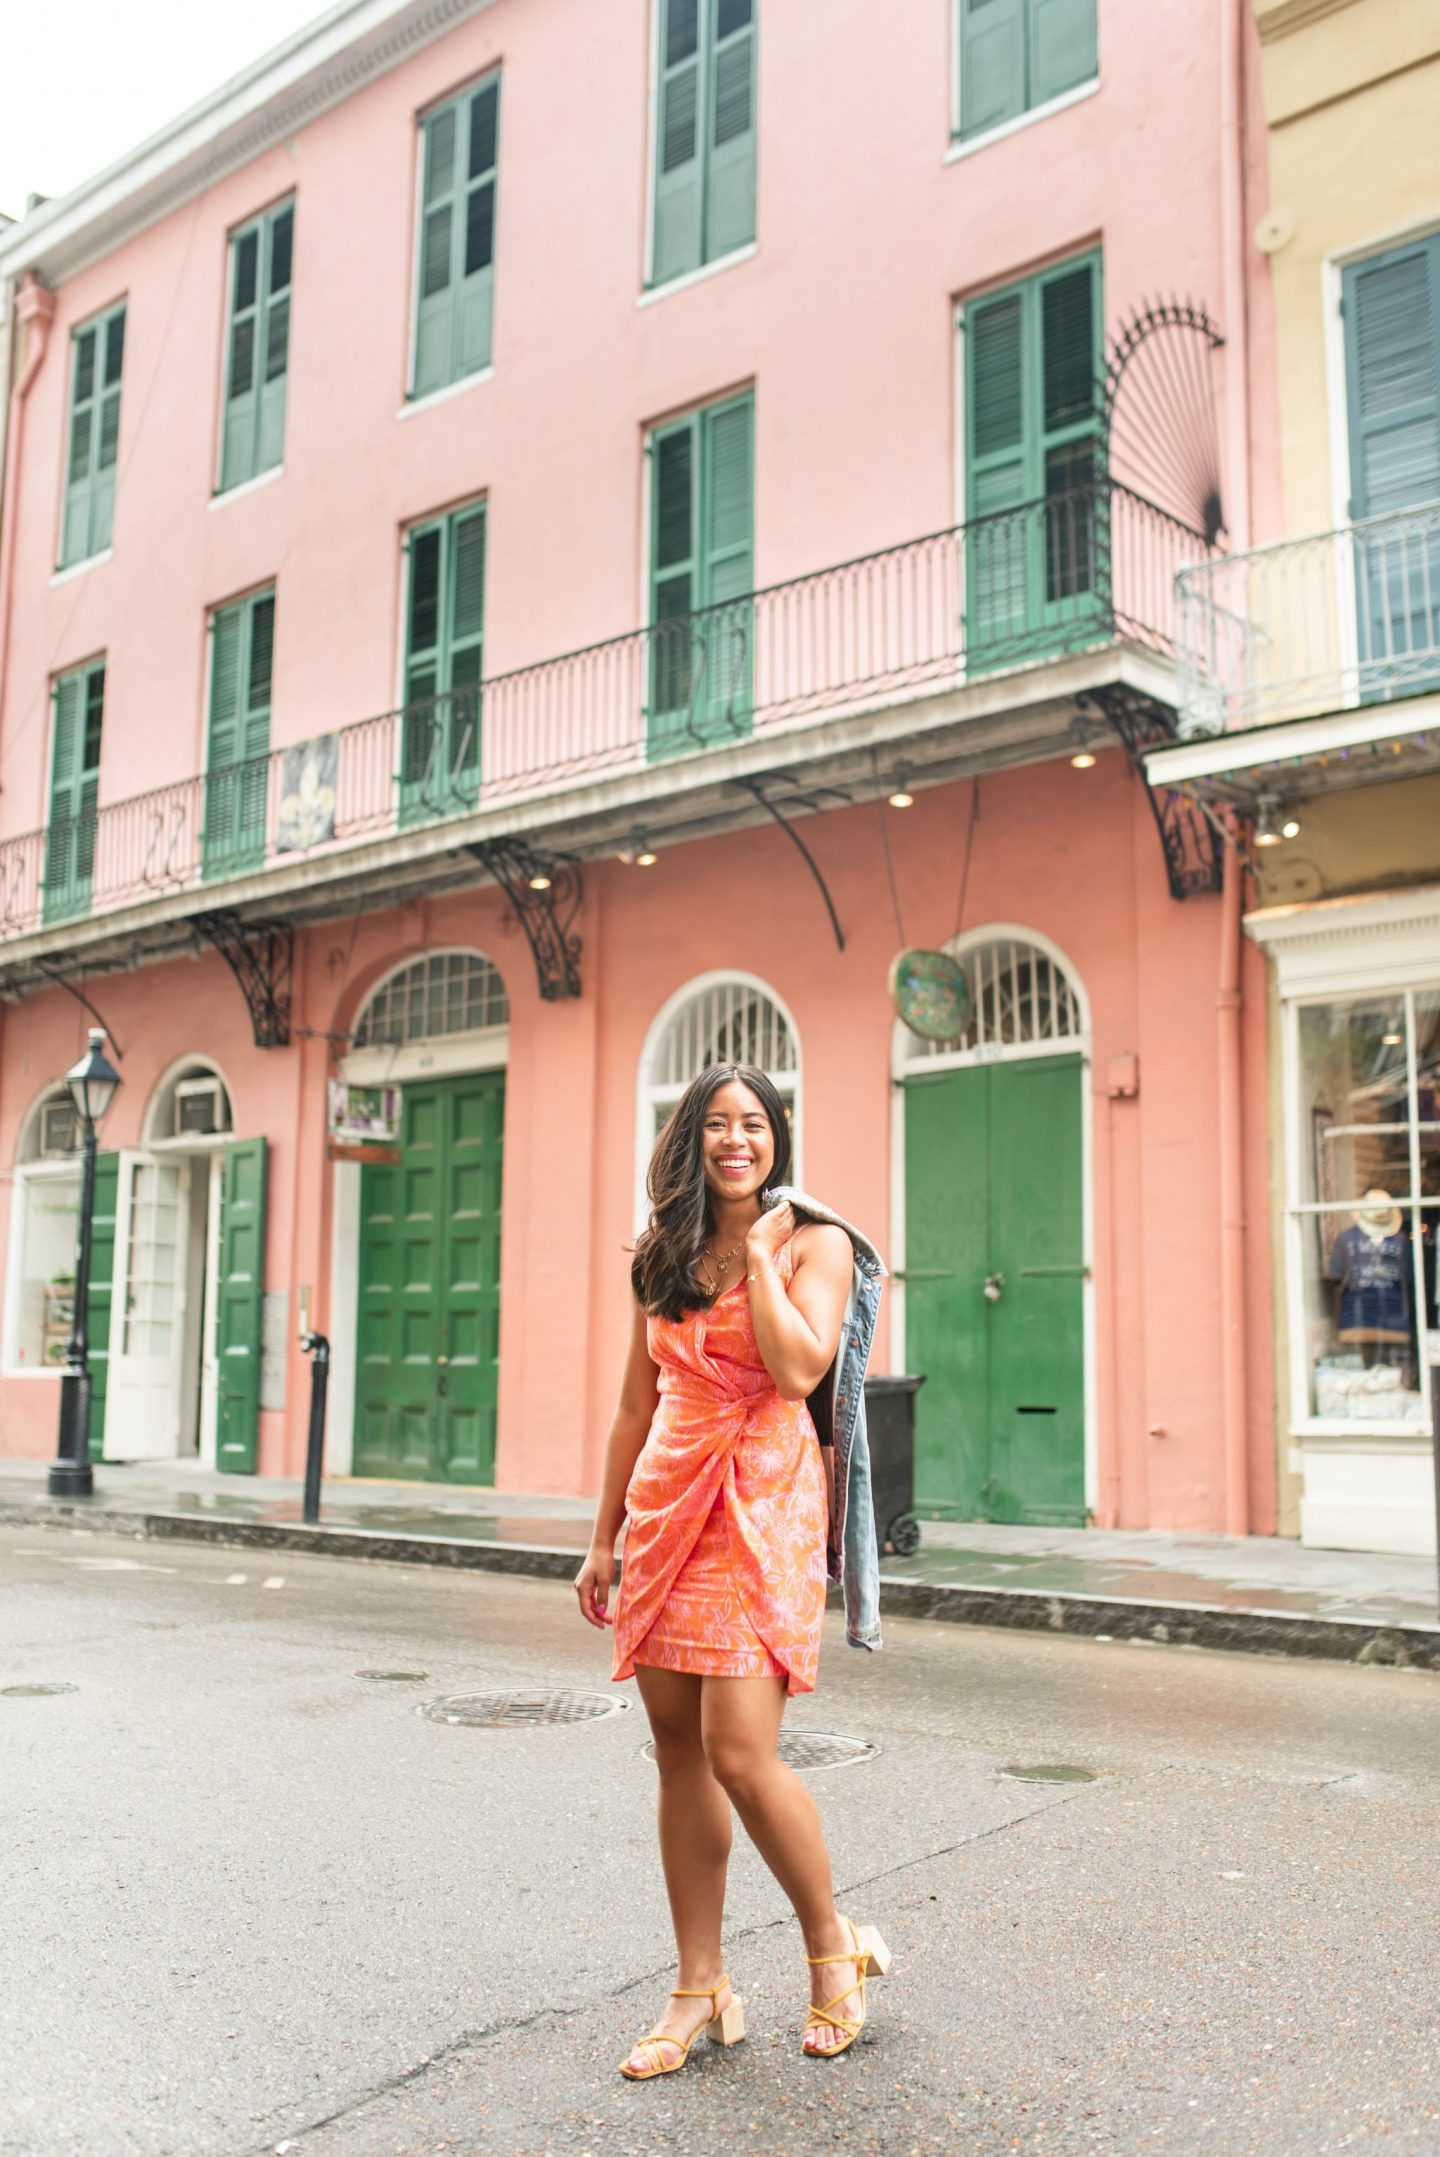 Pink Instagram worthy places – pink places aesthetic – pink places travel – pink places to visit – millennial pink places – photo spots in New York – Instagrammable places in New Orleans – Instagram spots in Seattle – San Francisco Instagram spots – Boston Instagram spots – Portland Instagram spots – Seattle photo spots